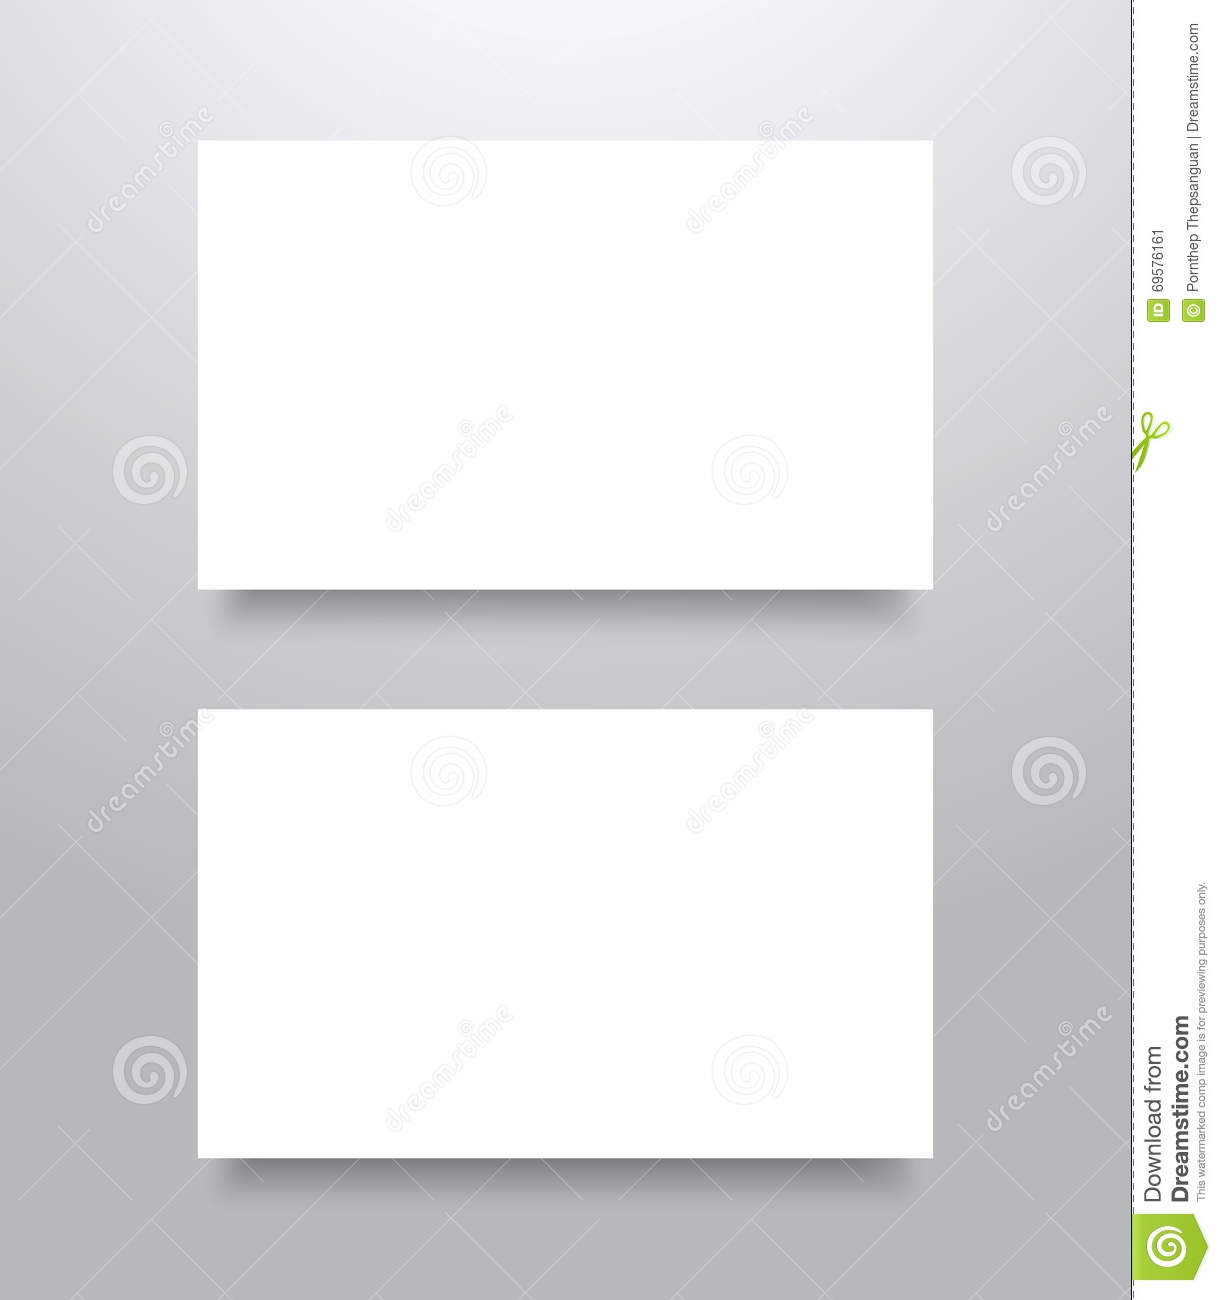 Blank Business card mockup stock vector. Illustration of simple ...